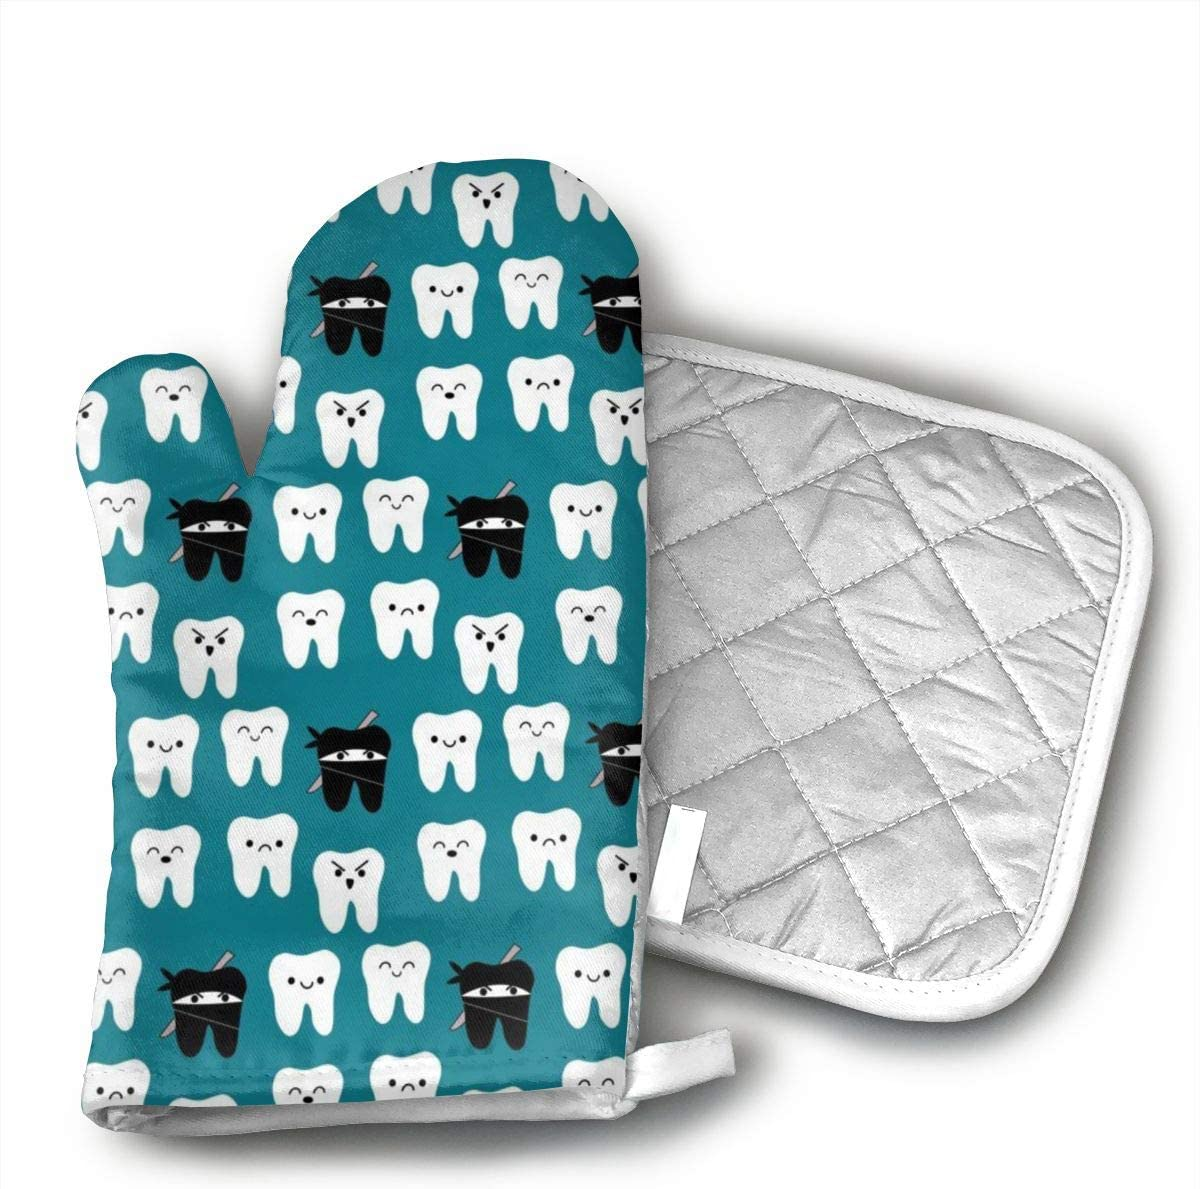 Tooth Fabric - Tooth Teeth Dentist Dental Oven Mitts and Potholders (2-Piece Sets) - Kitchen Set with Cotton Heat Resistant,Oven Gloves for BBQ Cooking Baking Grilling